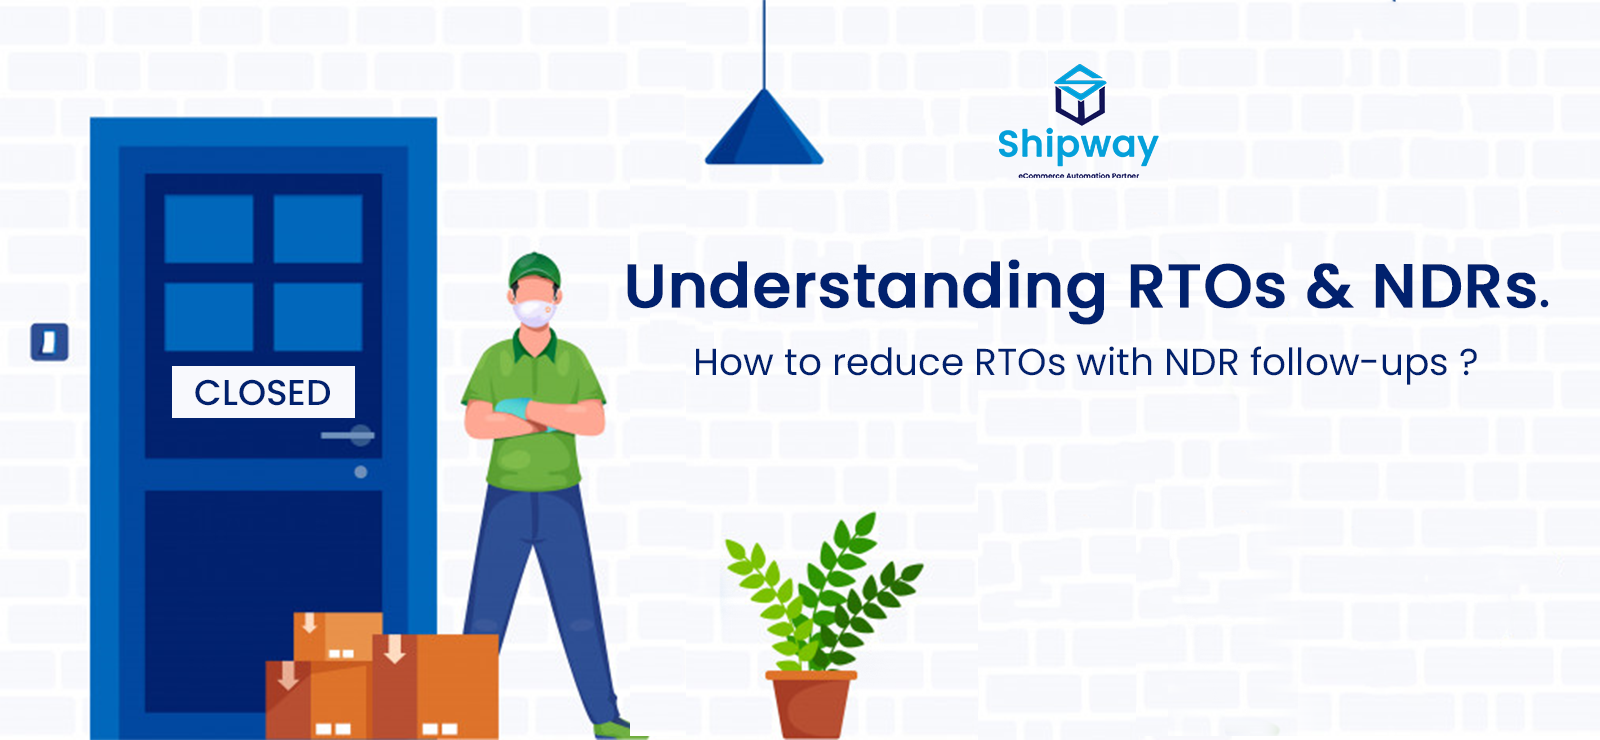 Understanding RTOs & NDRs. How to reduce RTOs with NDR follow-ups?